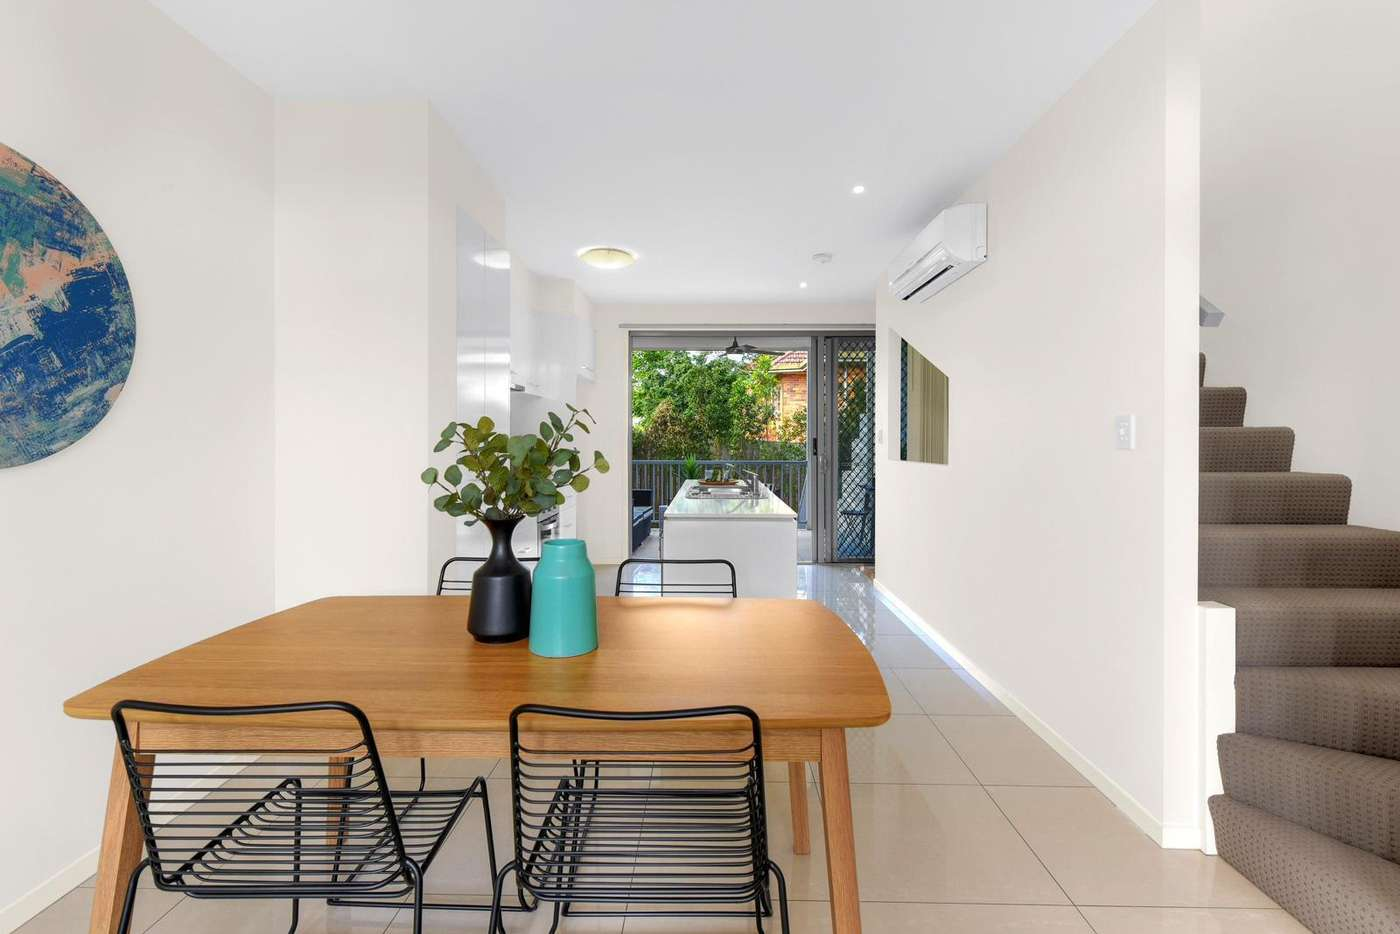 Sixth view of Homely townhouse listing, 8/15 Ainslie Street, Alderley QLD 4051